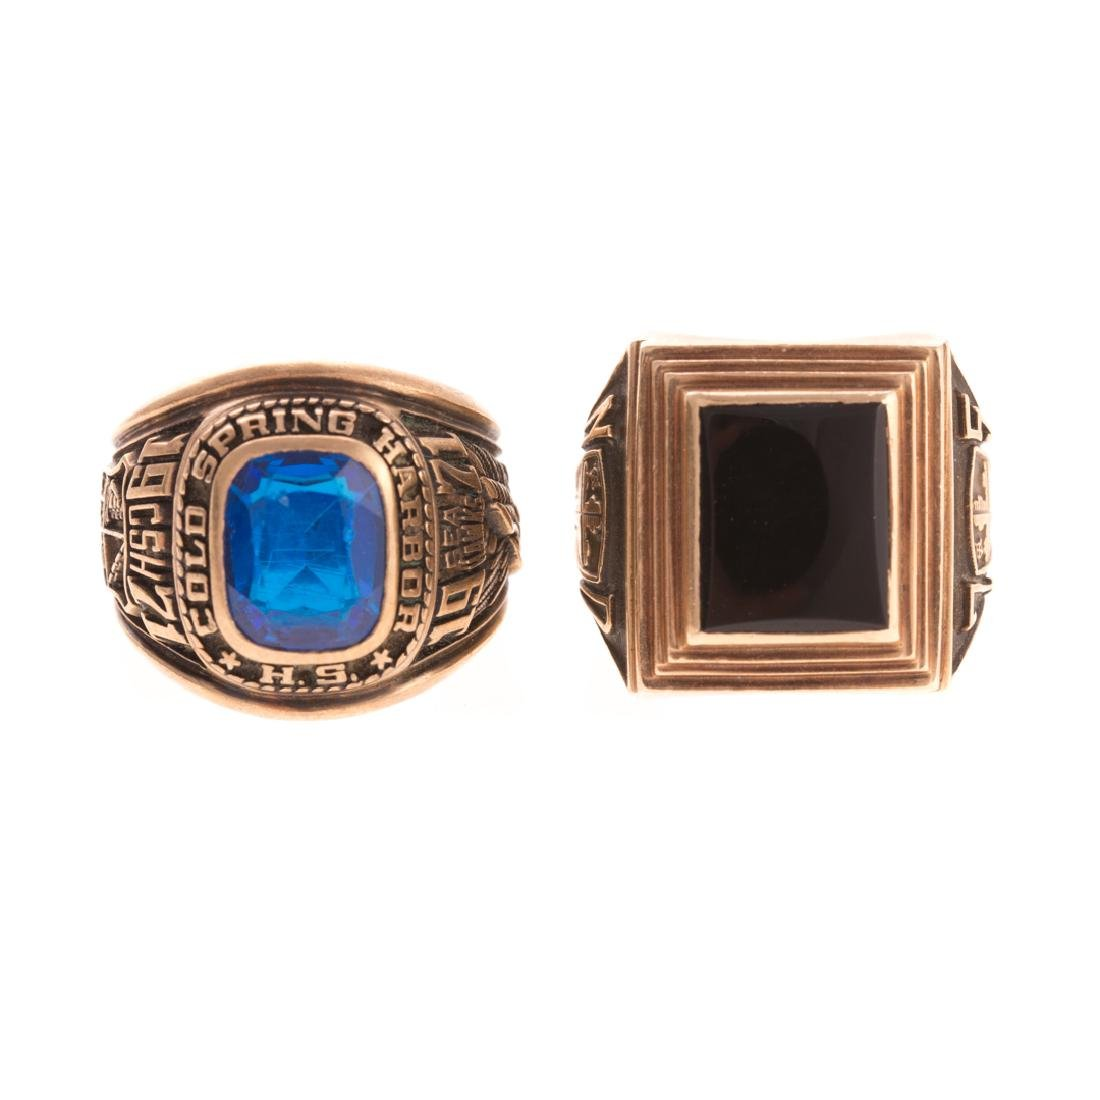 A Pair of Lady's Class Rings in Gold